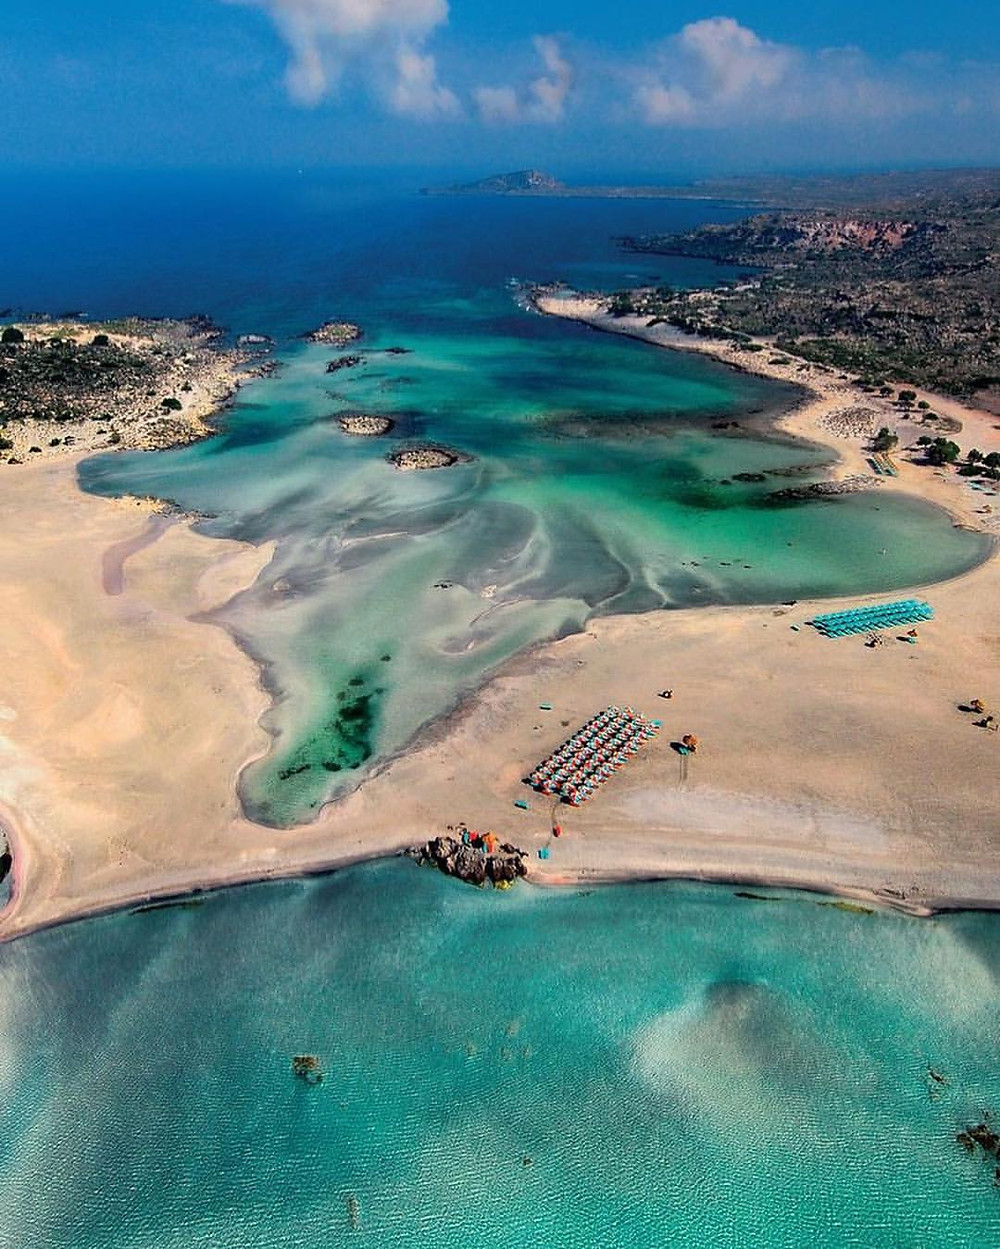 Elafonissi island from above